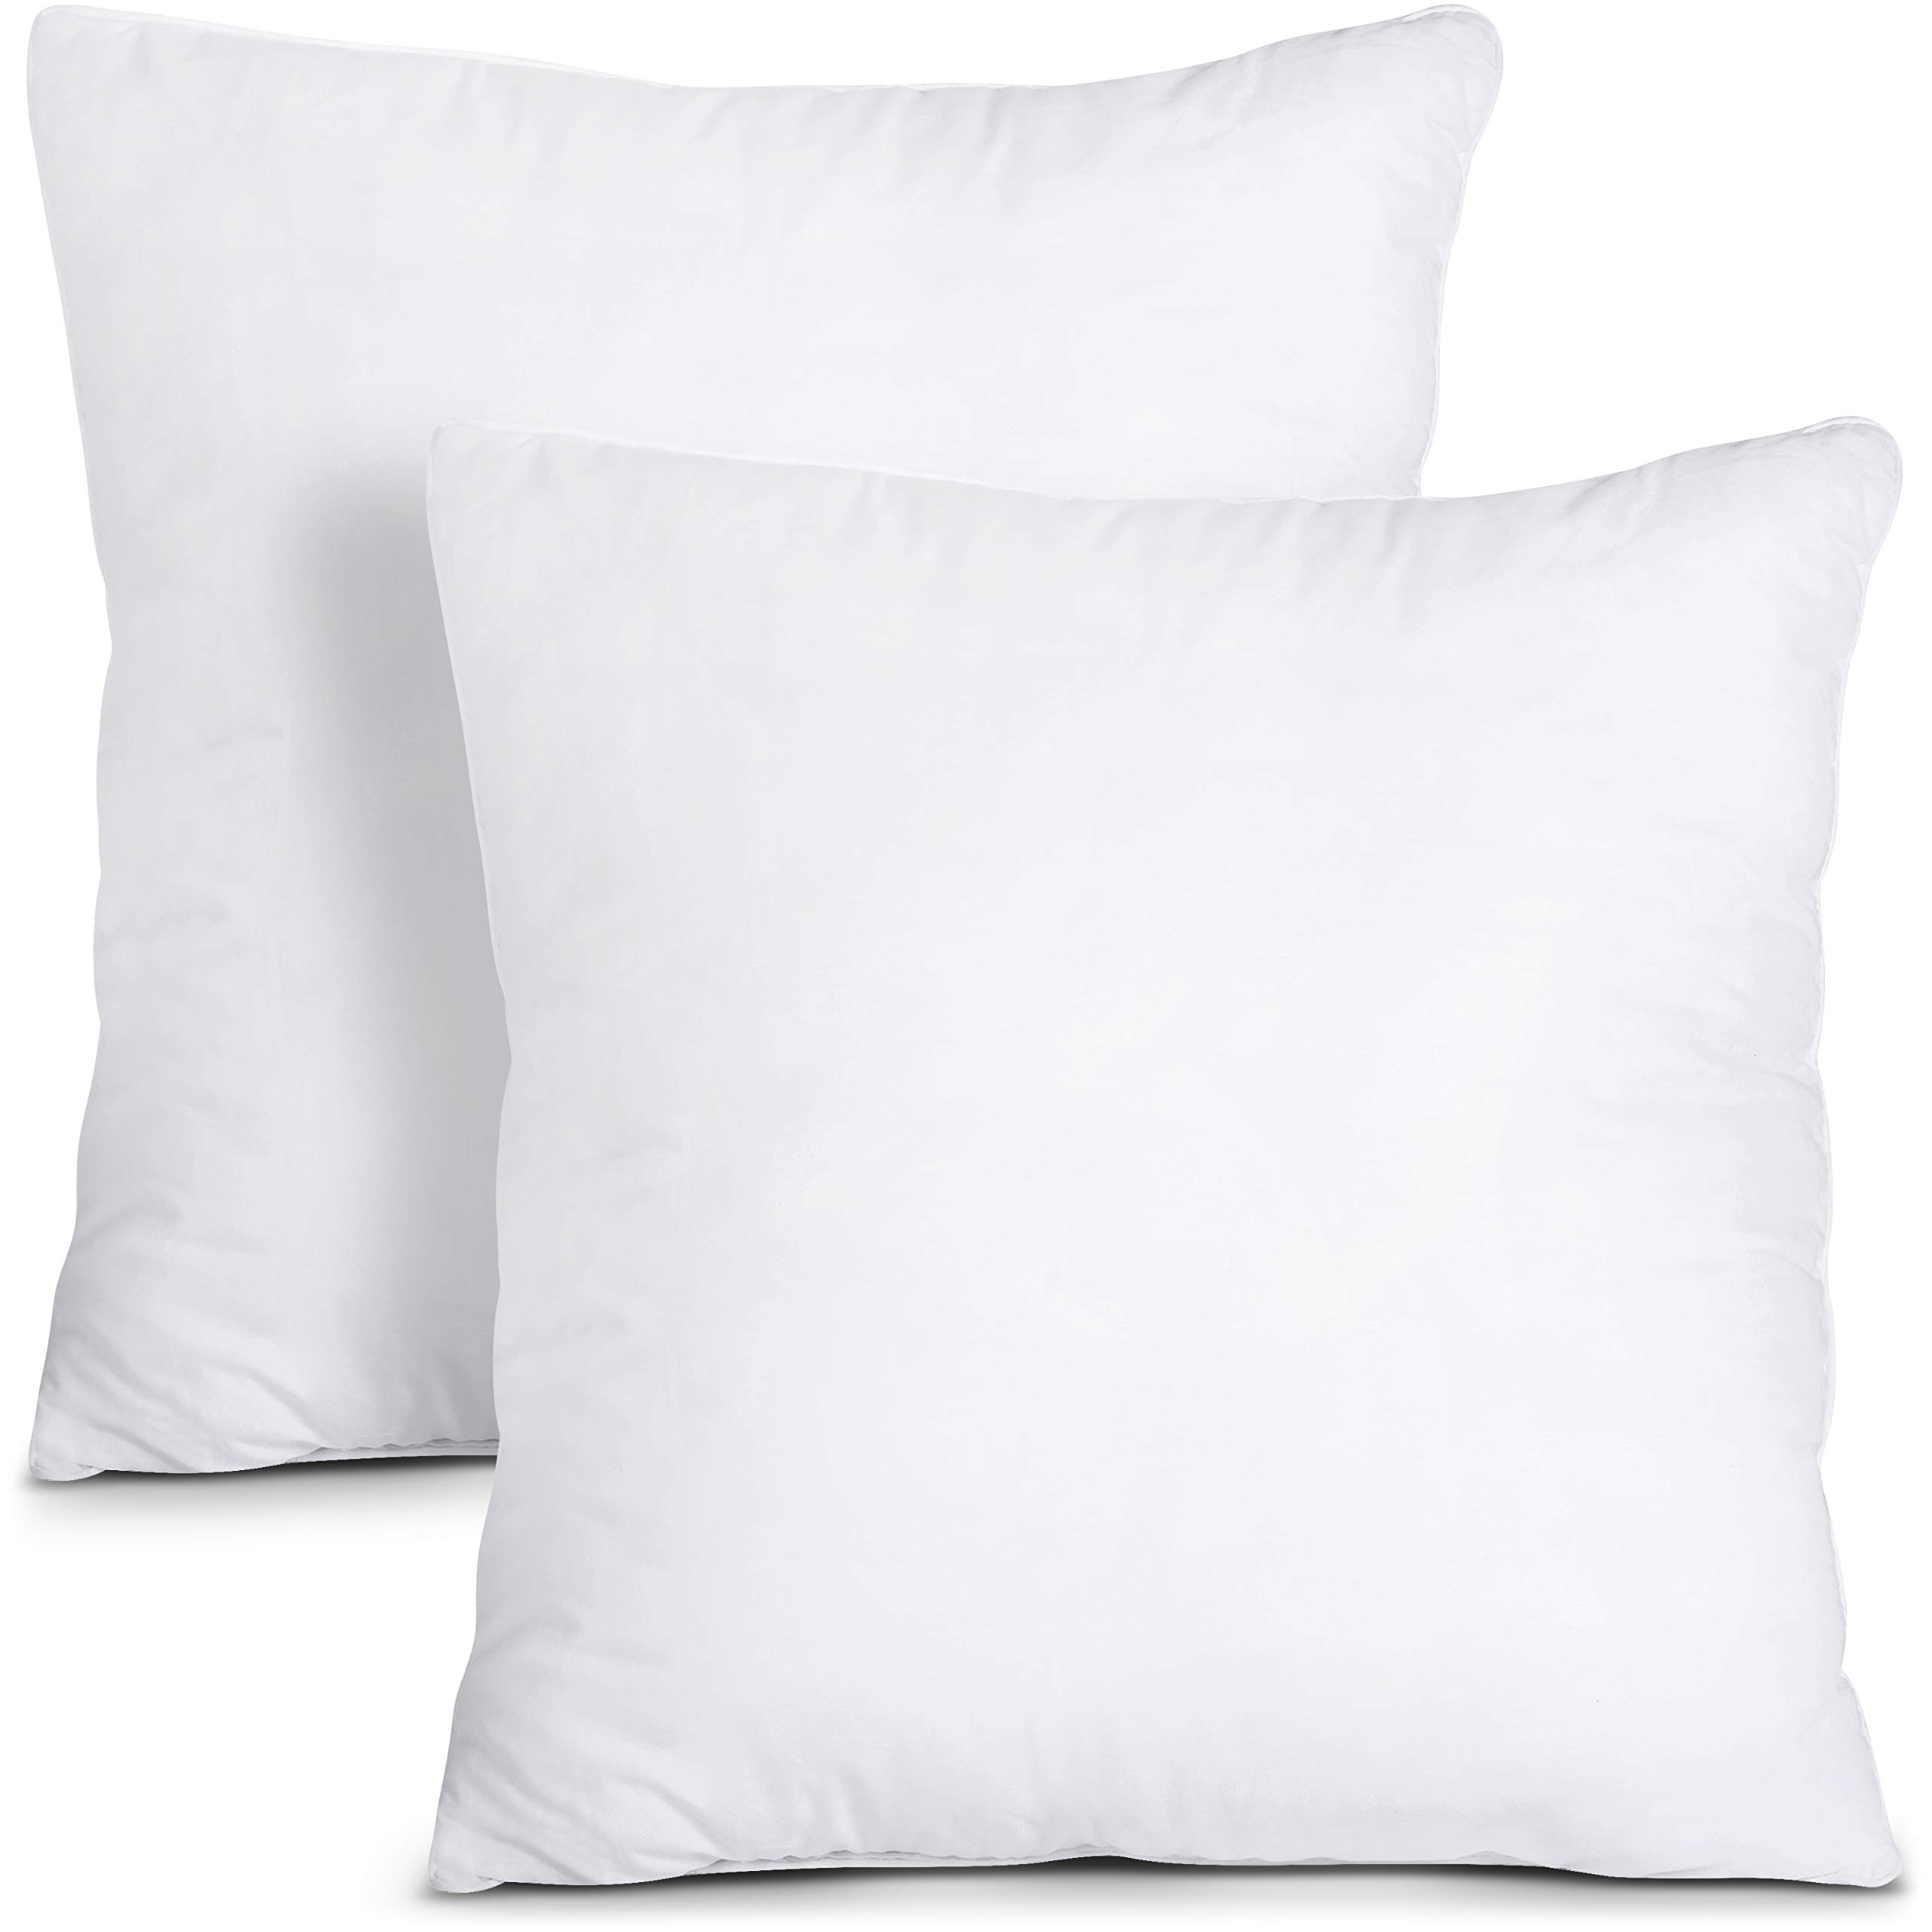 Utopia Bedding Throw Pillows Insert (Pack of 2, White) - 12 x 12 Inches Bed and Couch Pillows - Indoor Decorative Pillows